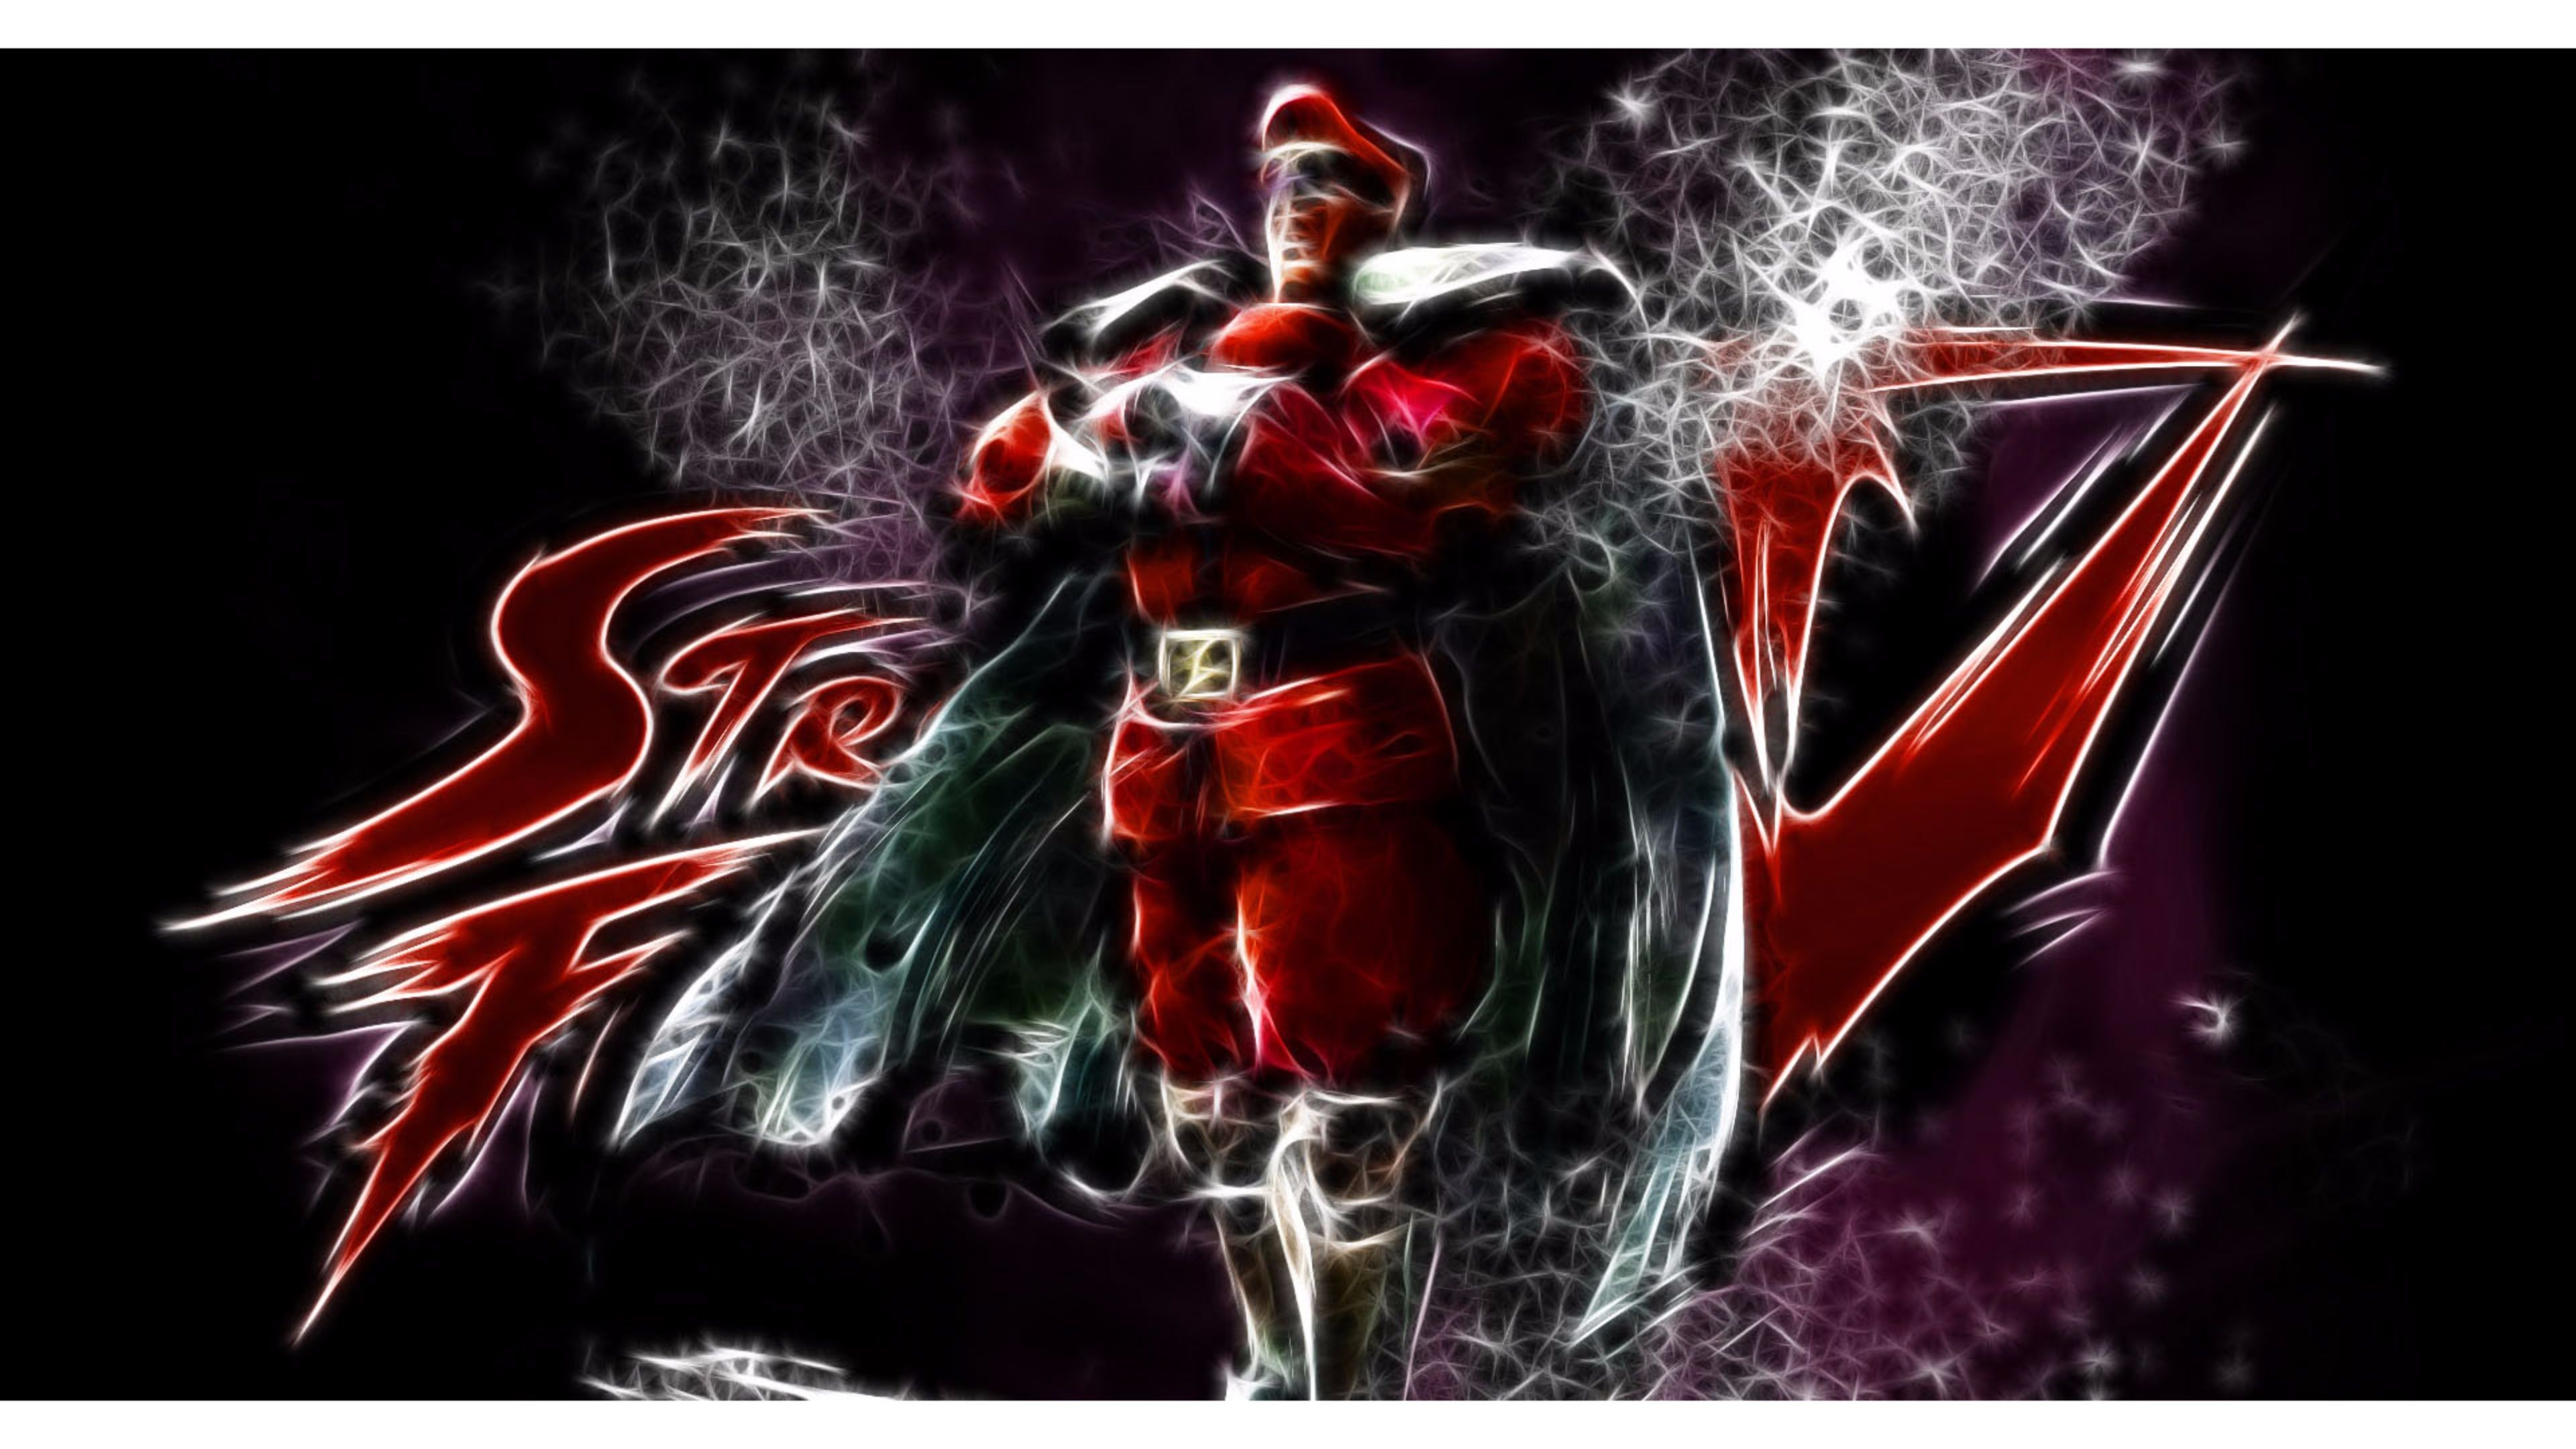 Street Fighter 4 Wallpapers: Street Fighter V Wallpapers (73+ Images